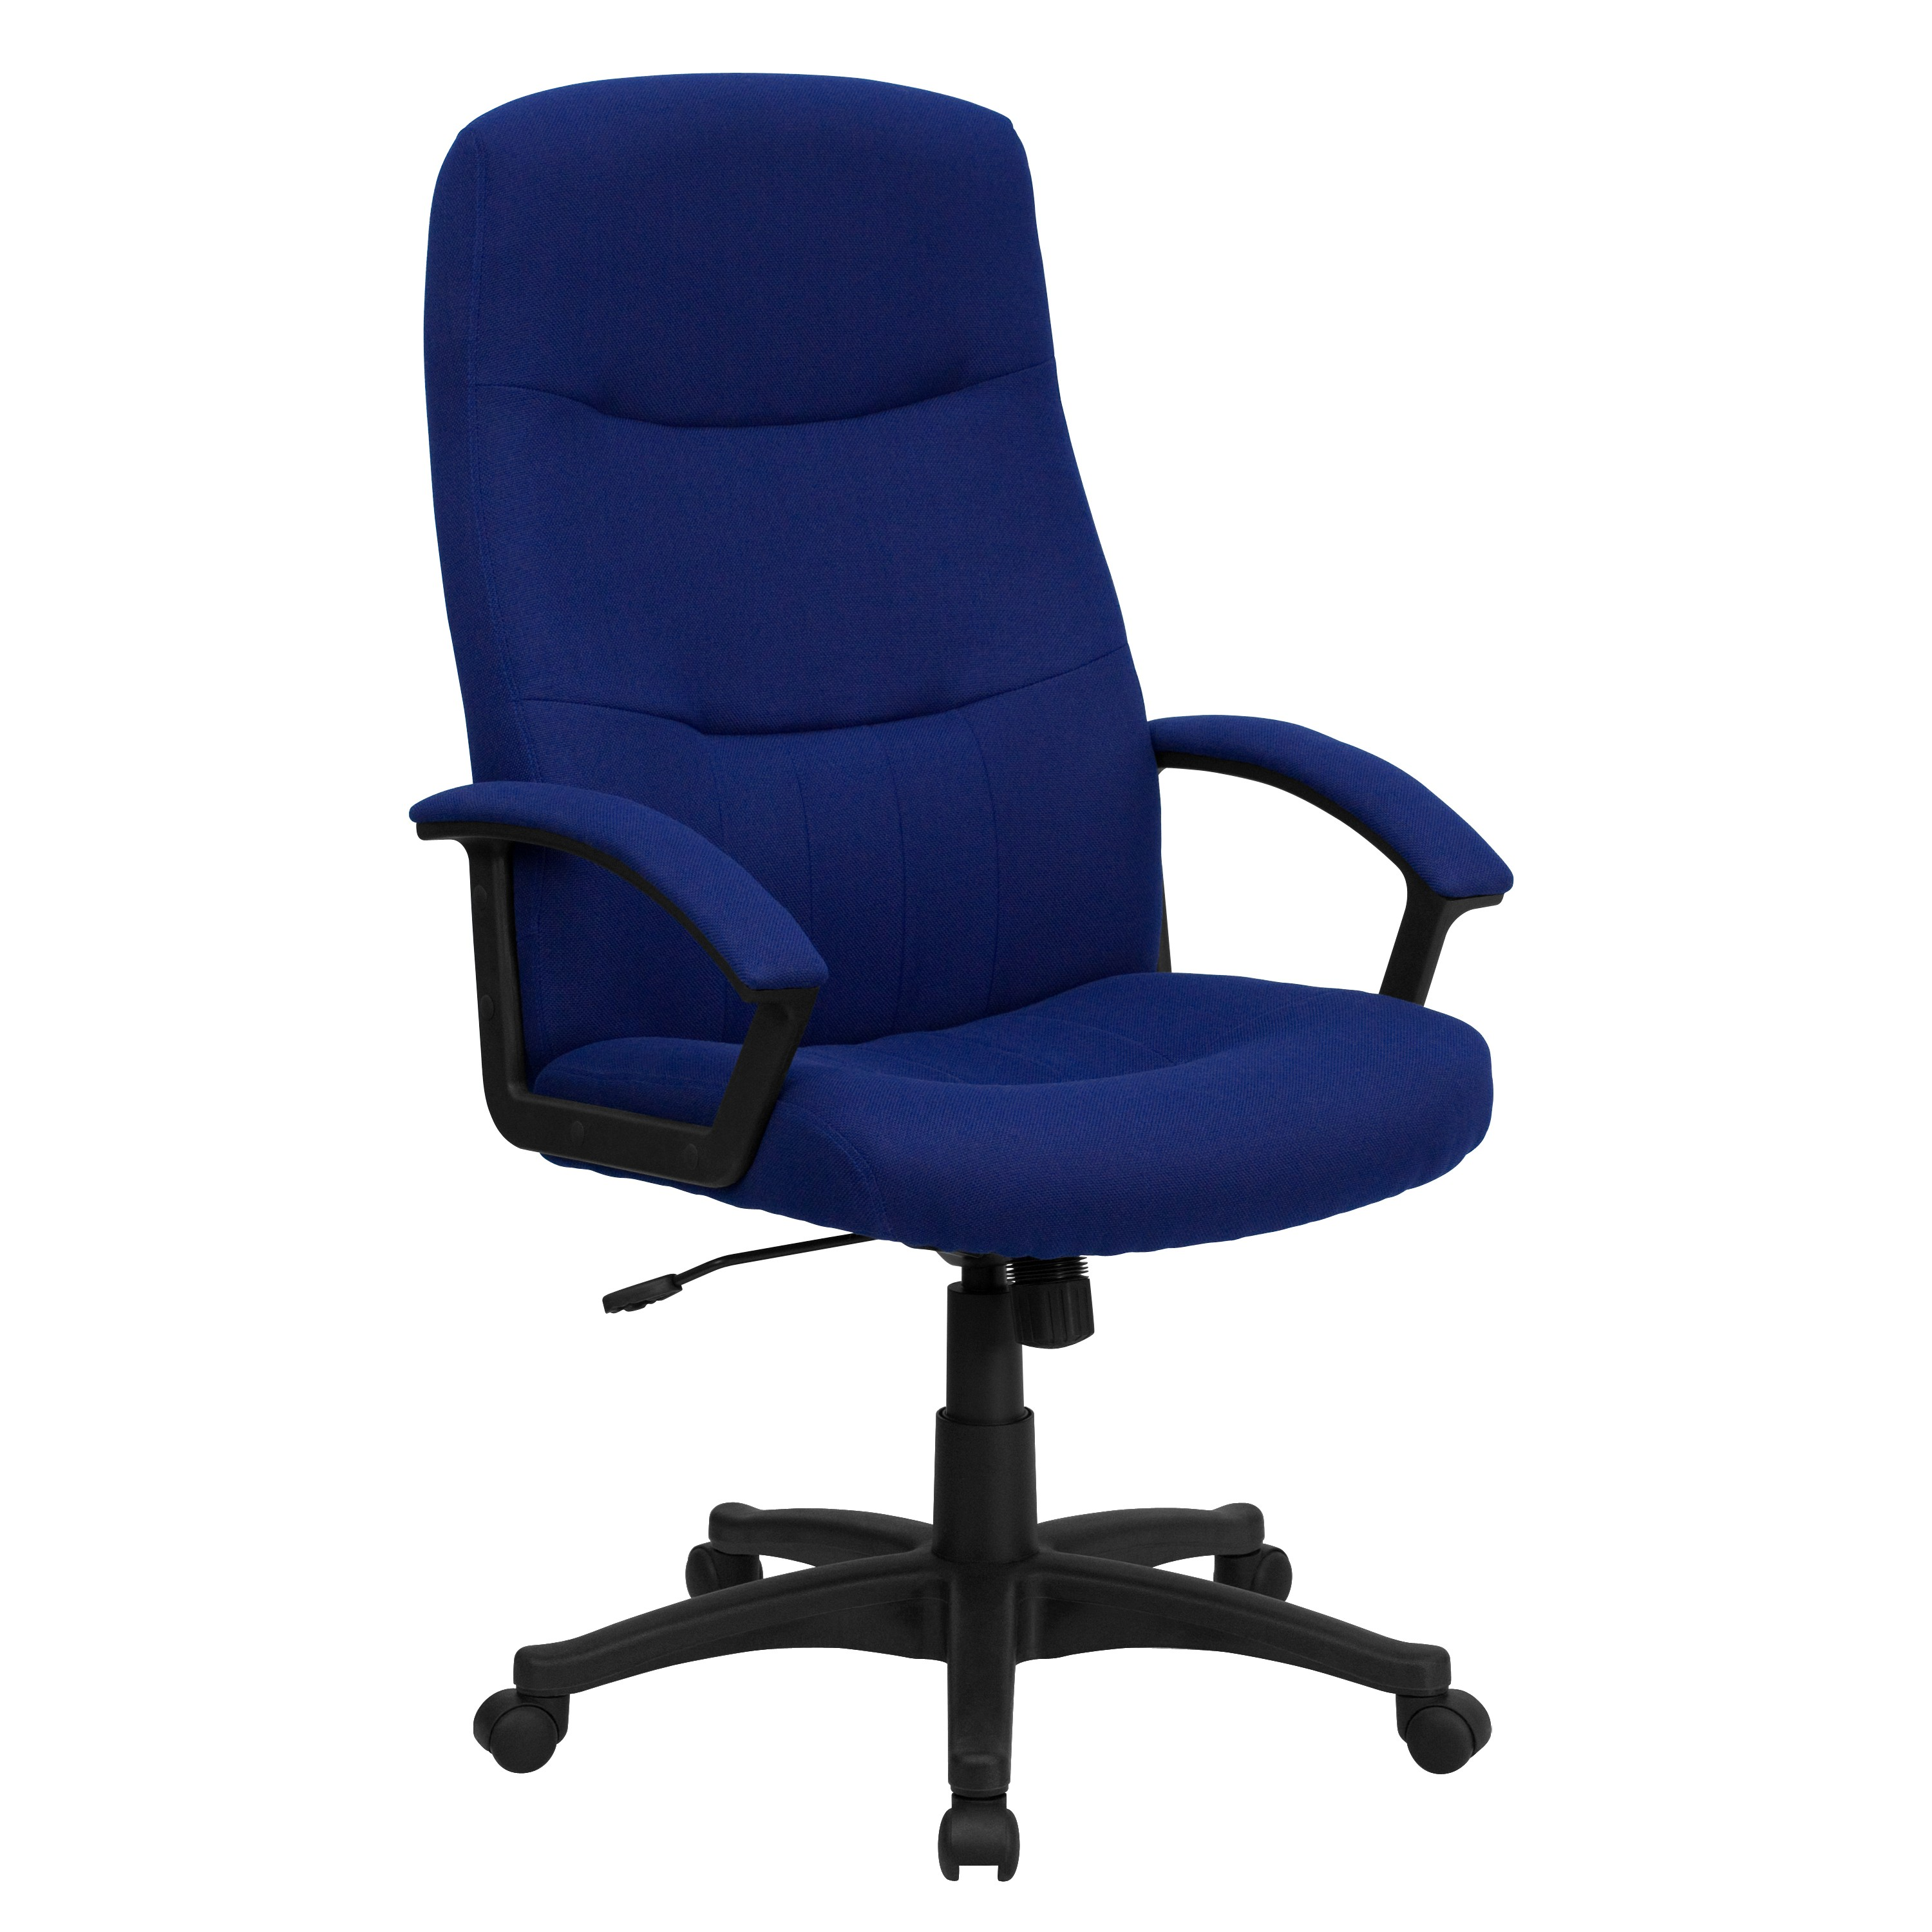 High Back Navy Blue Fabric Executive Swivel fice Chair